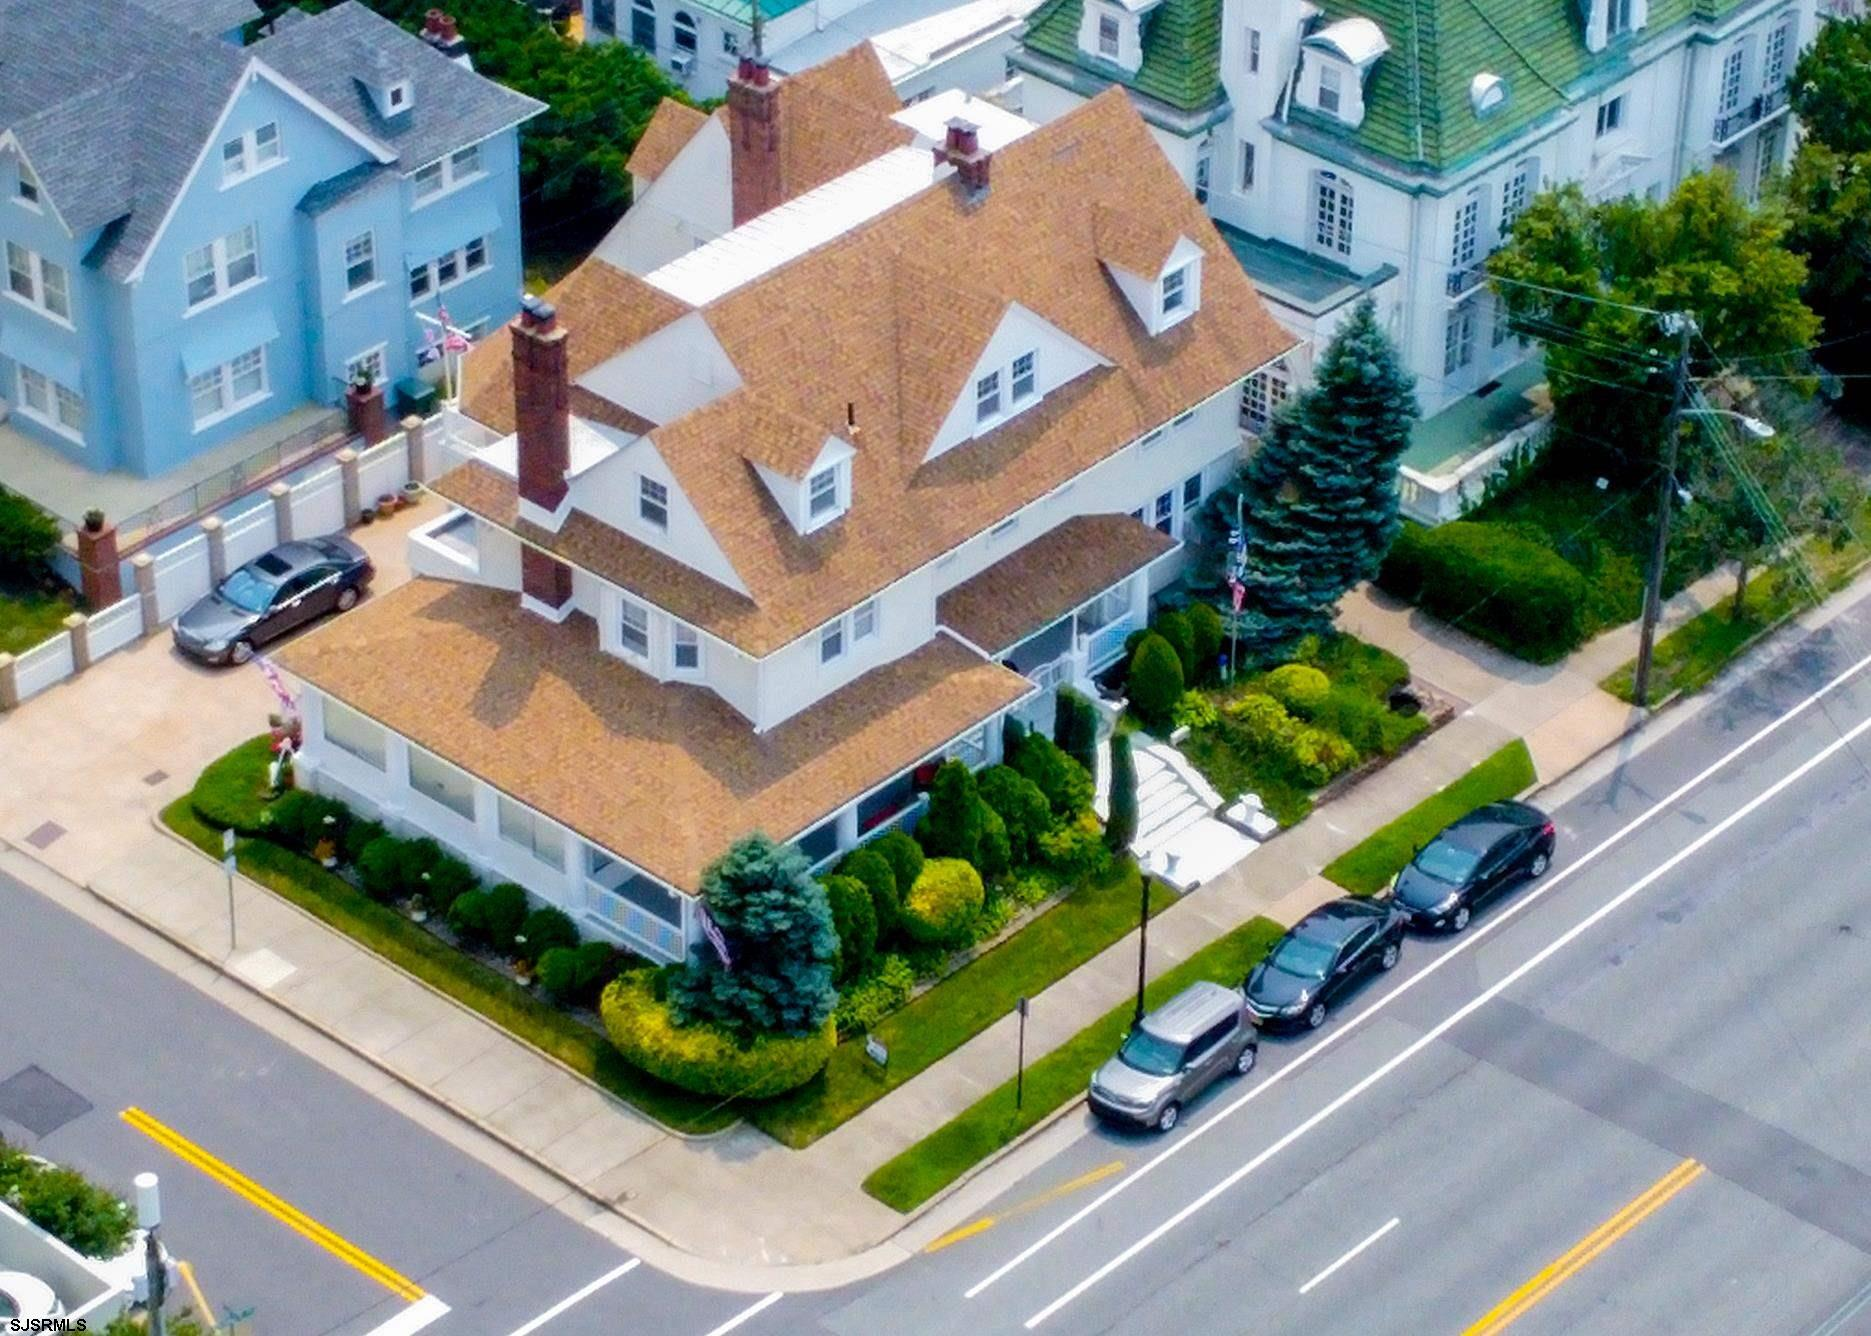 Jersey Shore Living! This Beach Block Historic Chelsea Section Home with Ocean Views from every leve